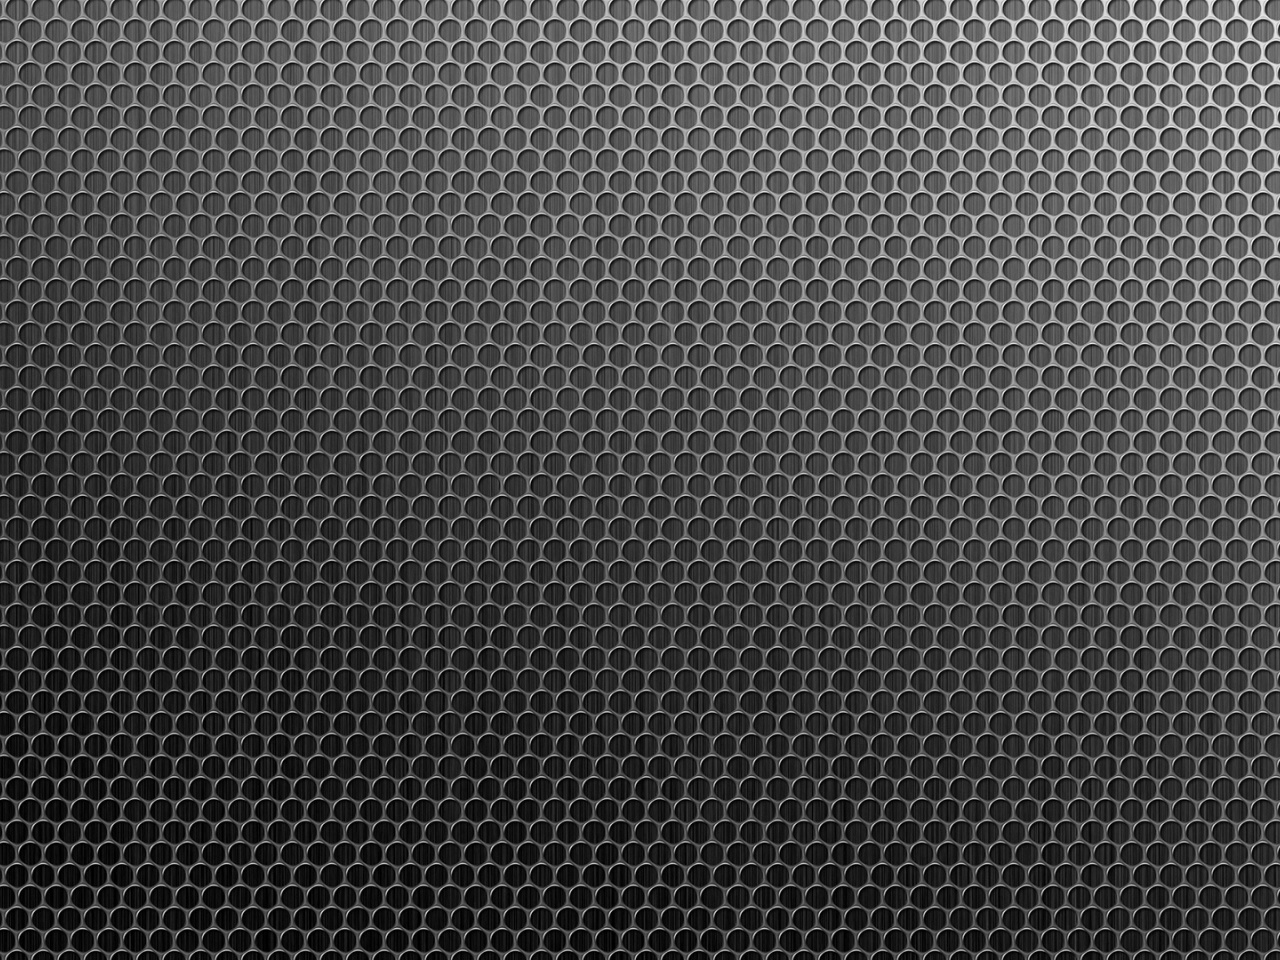 1366x768 grey honeycomb pattern - photo #6